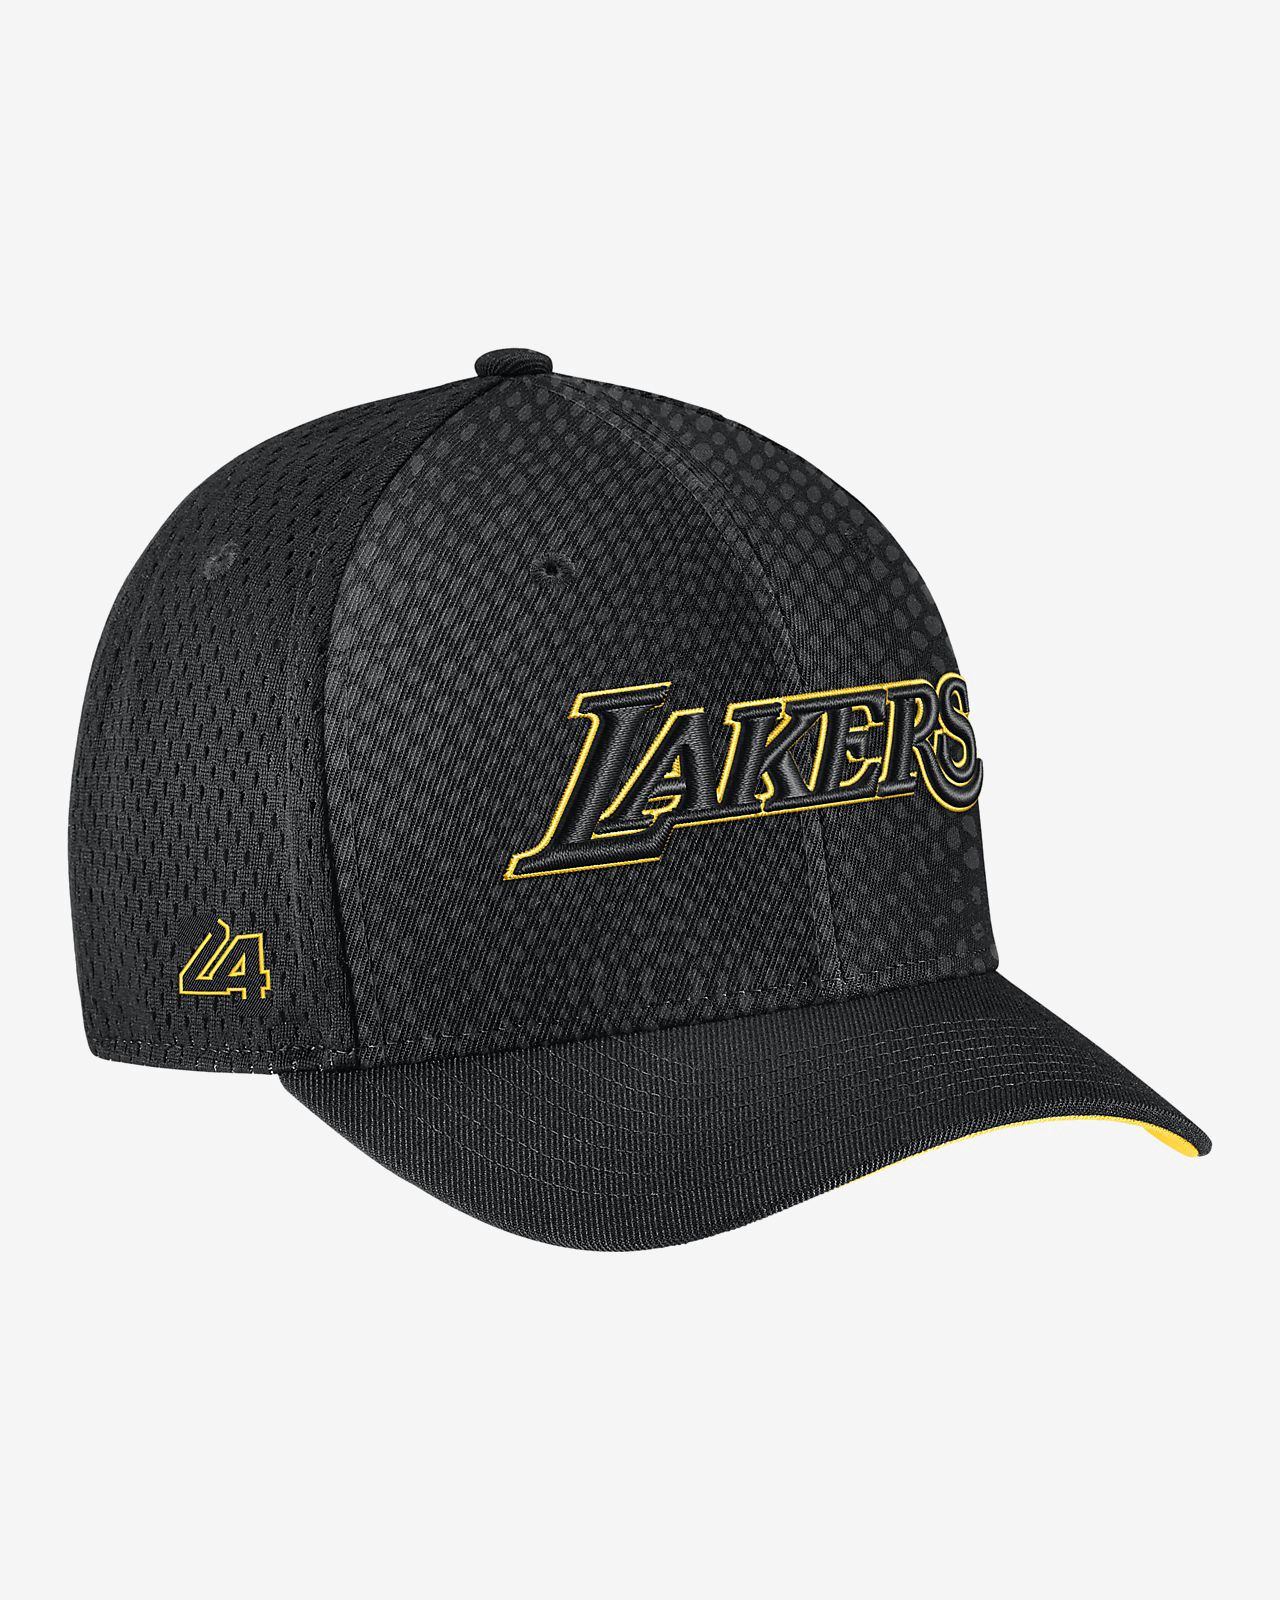 975b9c22857cd Nike Los Angeles Lakers City Edition Classic99 Unisex Nba Hat ...